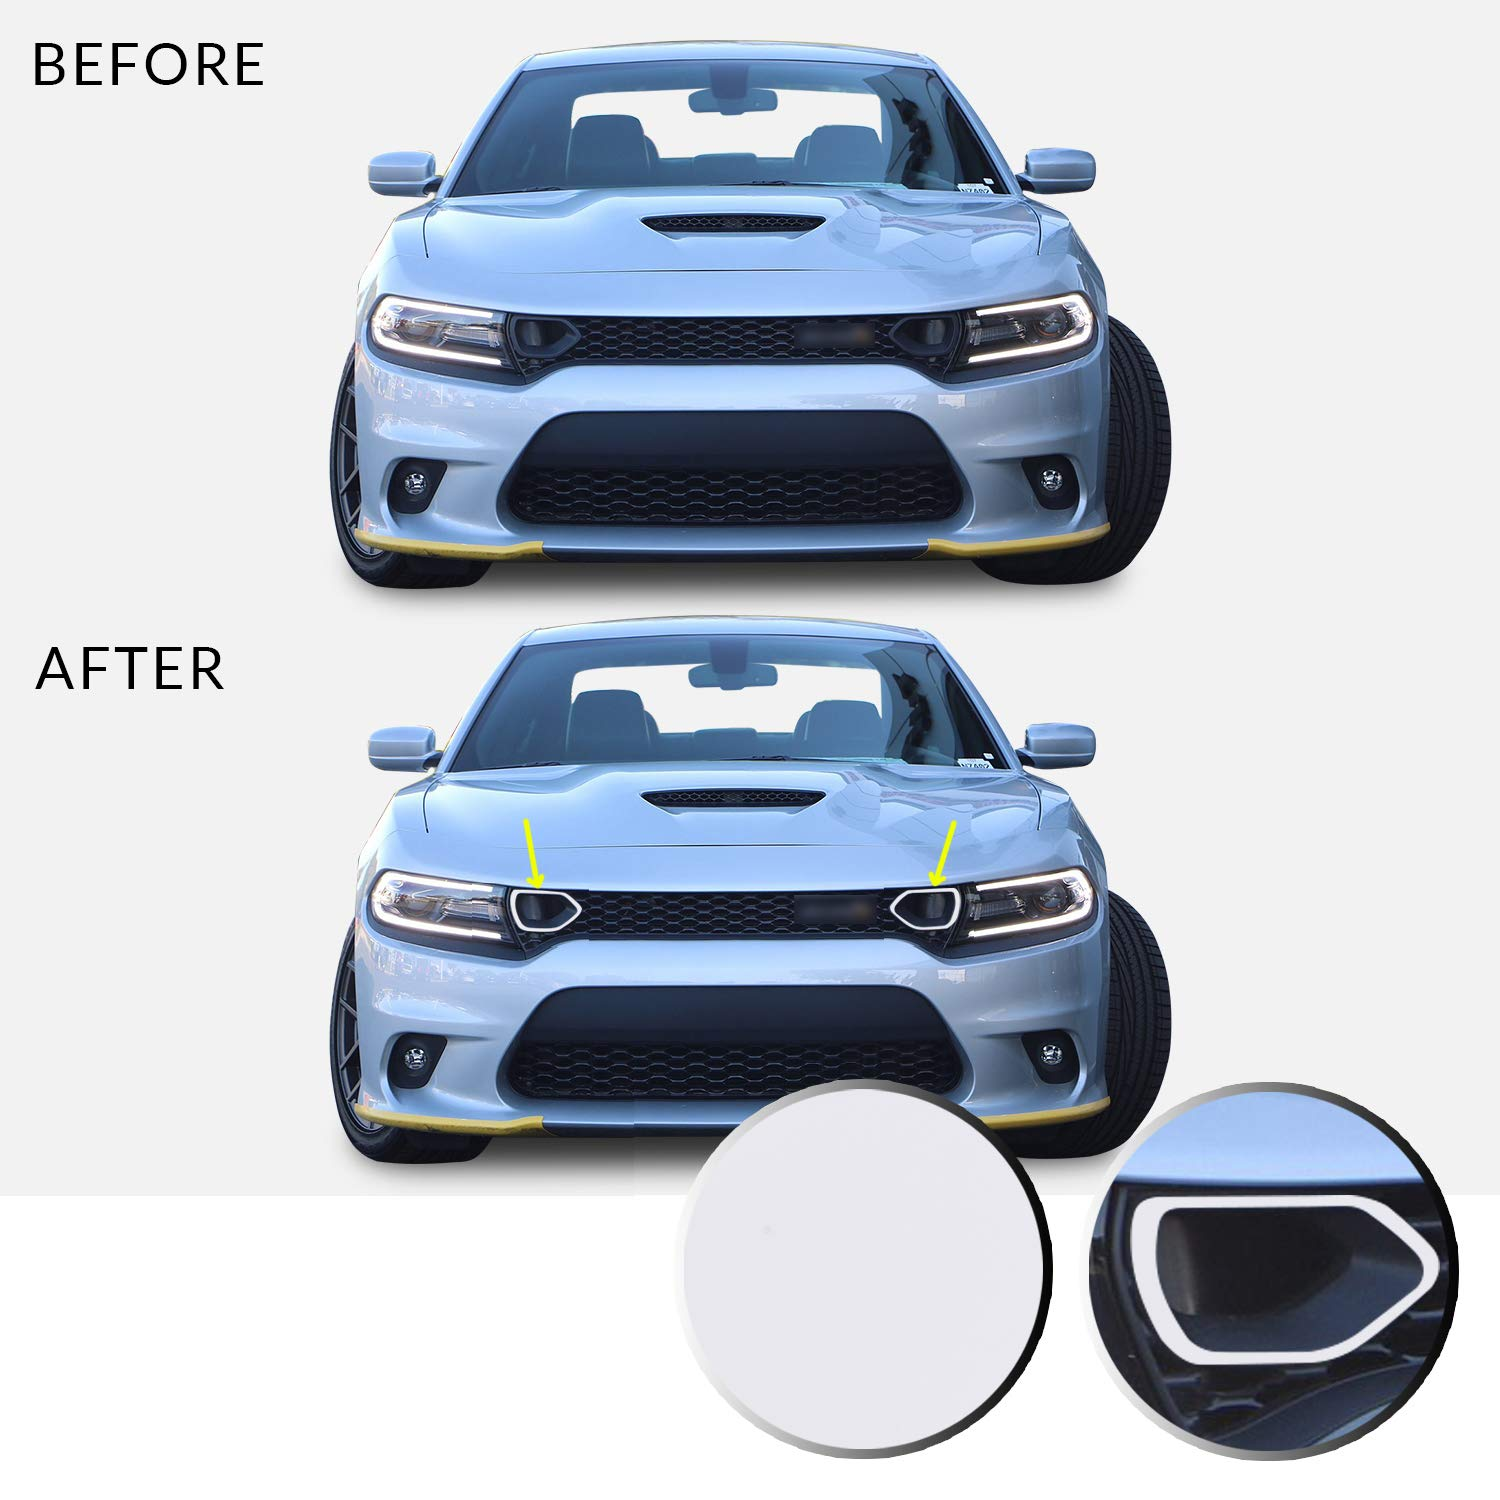 Matte Red Optix Front Upper Grille Bezel Vinyl Decal Overlay Trim Wrap Inserts Sticker Compatible with /& Fits Charger Scat Pack 2019 2020